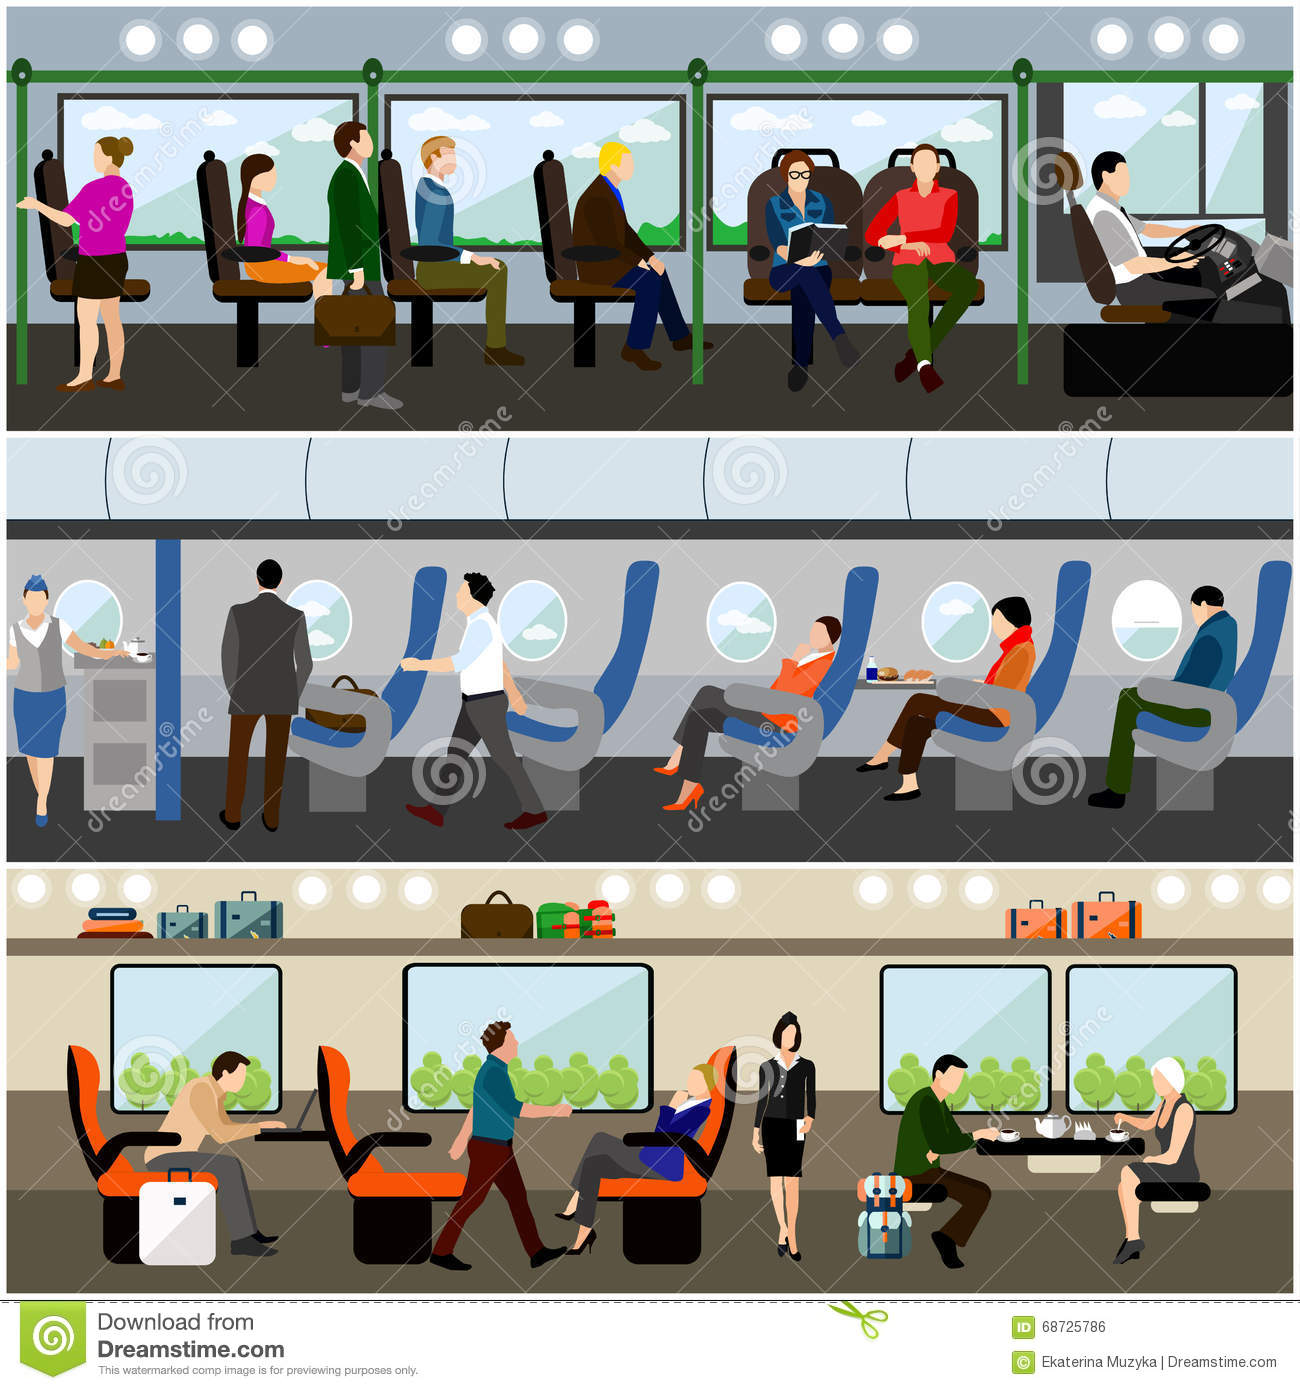 Passengers public transport concept vector banners set. People in bus, train and airplane. Transport interior